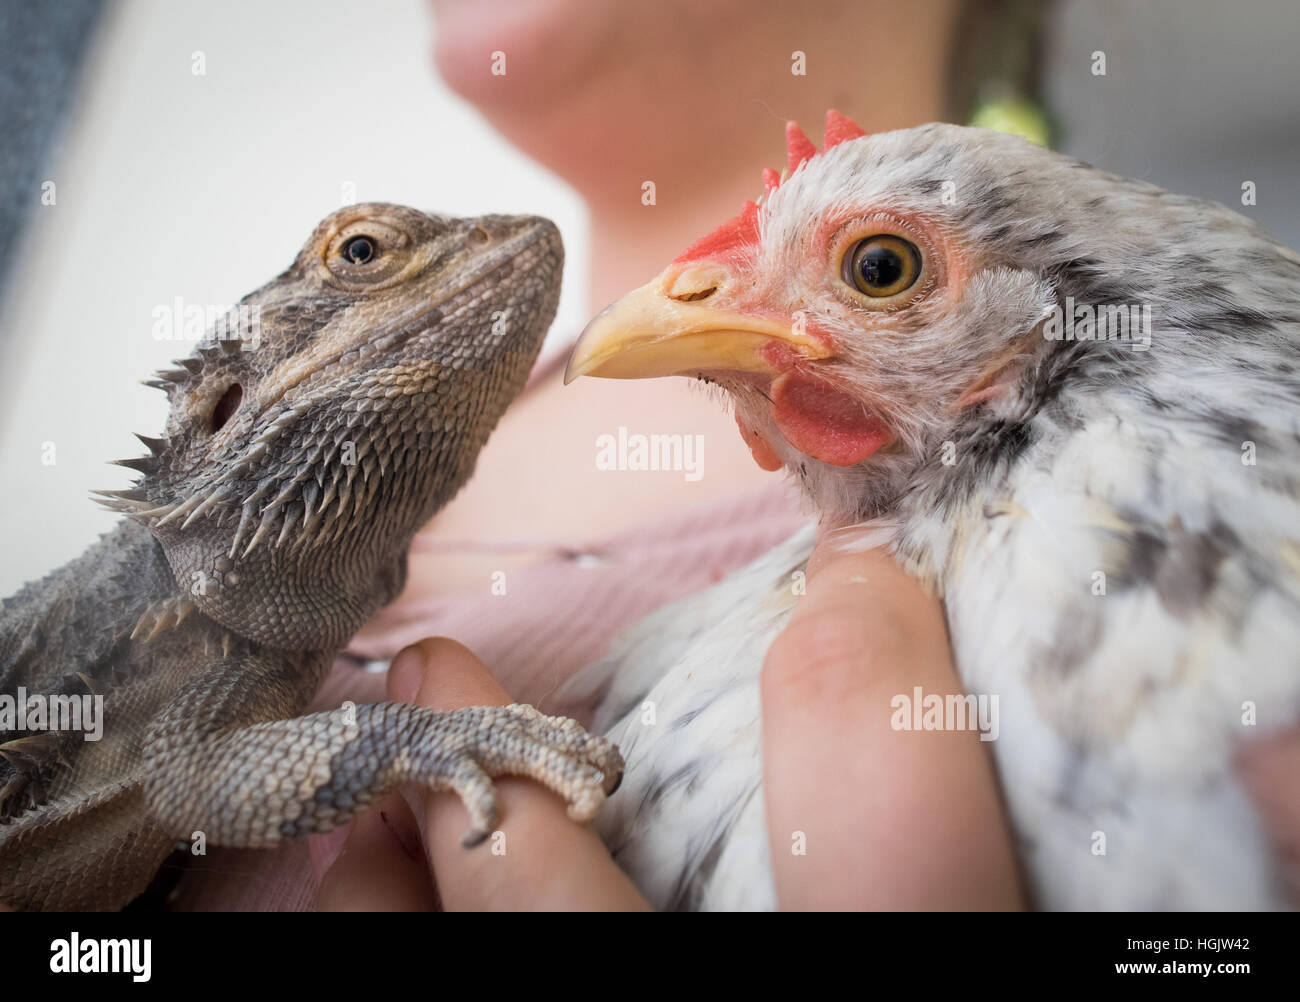 Schmitten, Germany. 06th Jan, 2017. Karl the bearded dragon, and Gisela the chicken in the Wirth family's living - Stock Image